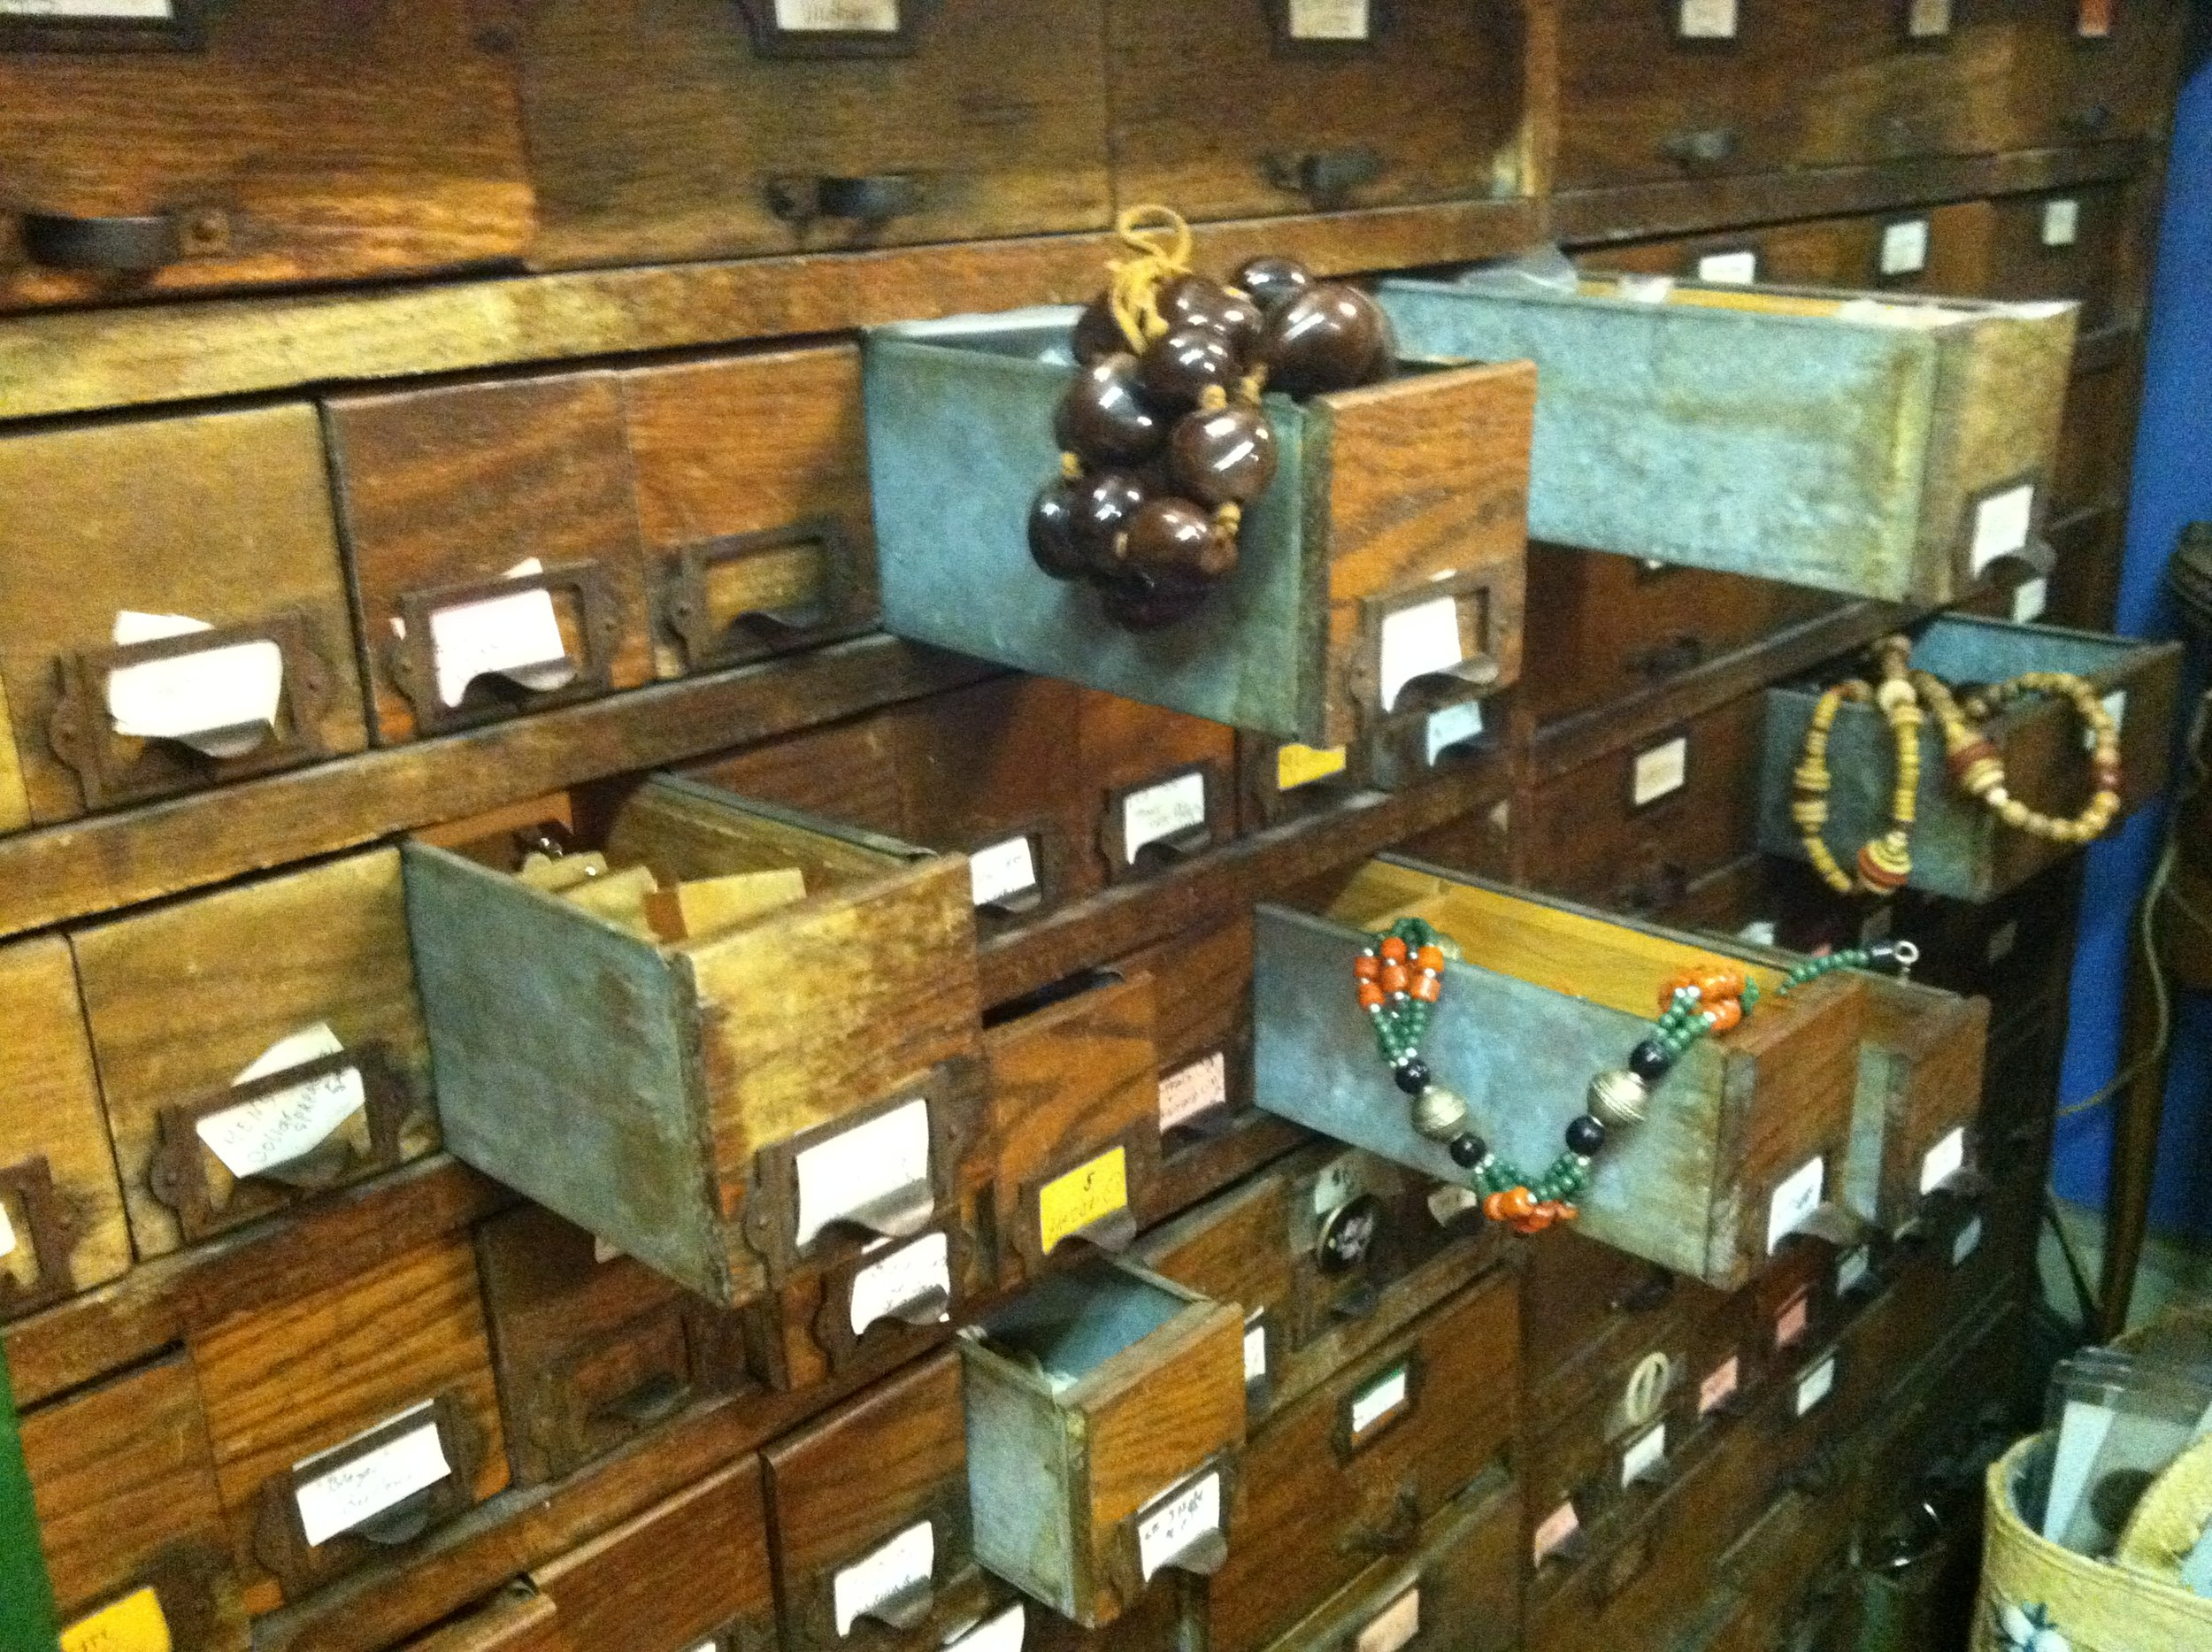 With overflowing filing cabinets and display cases lining the walls, Archangel Antiques is truly a one-stop shop for everything you've always wanted... and never knew existed. Photo by Robert Punchur.